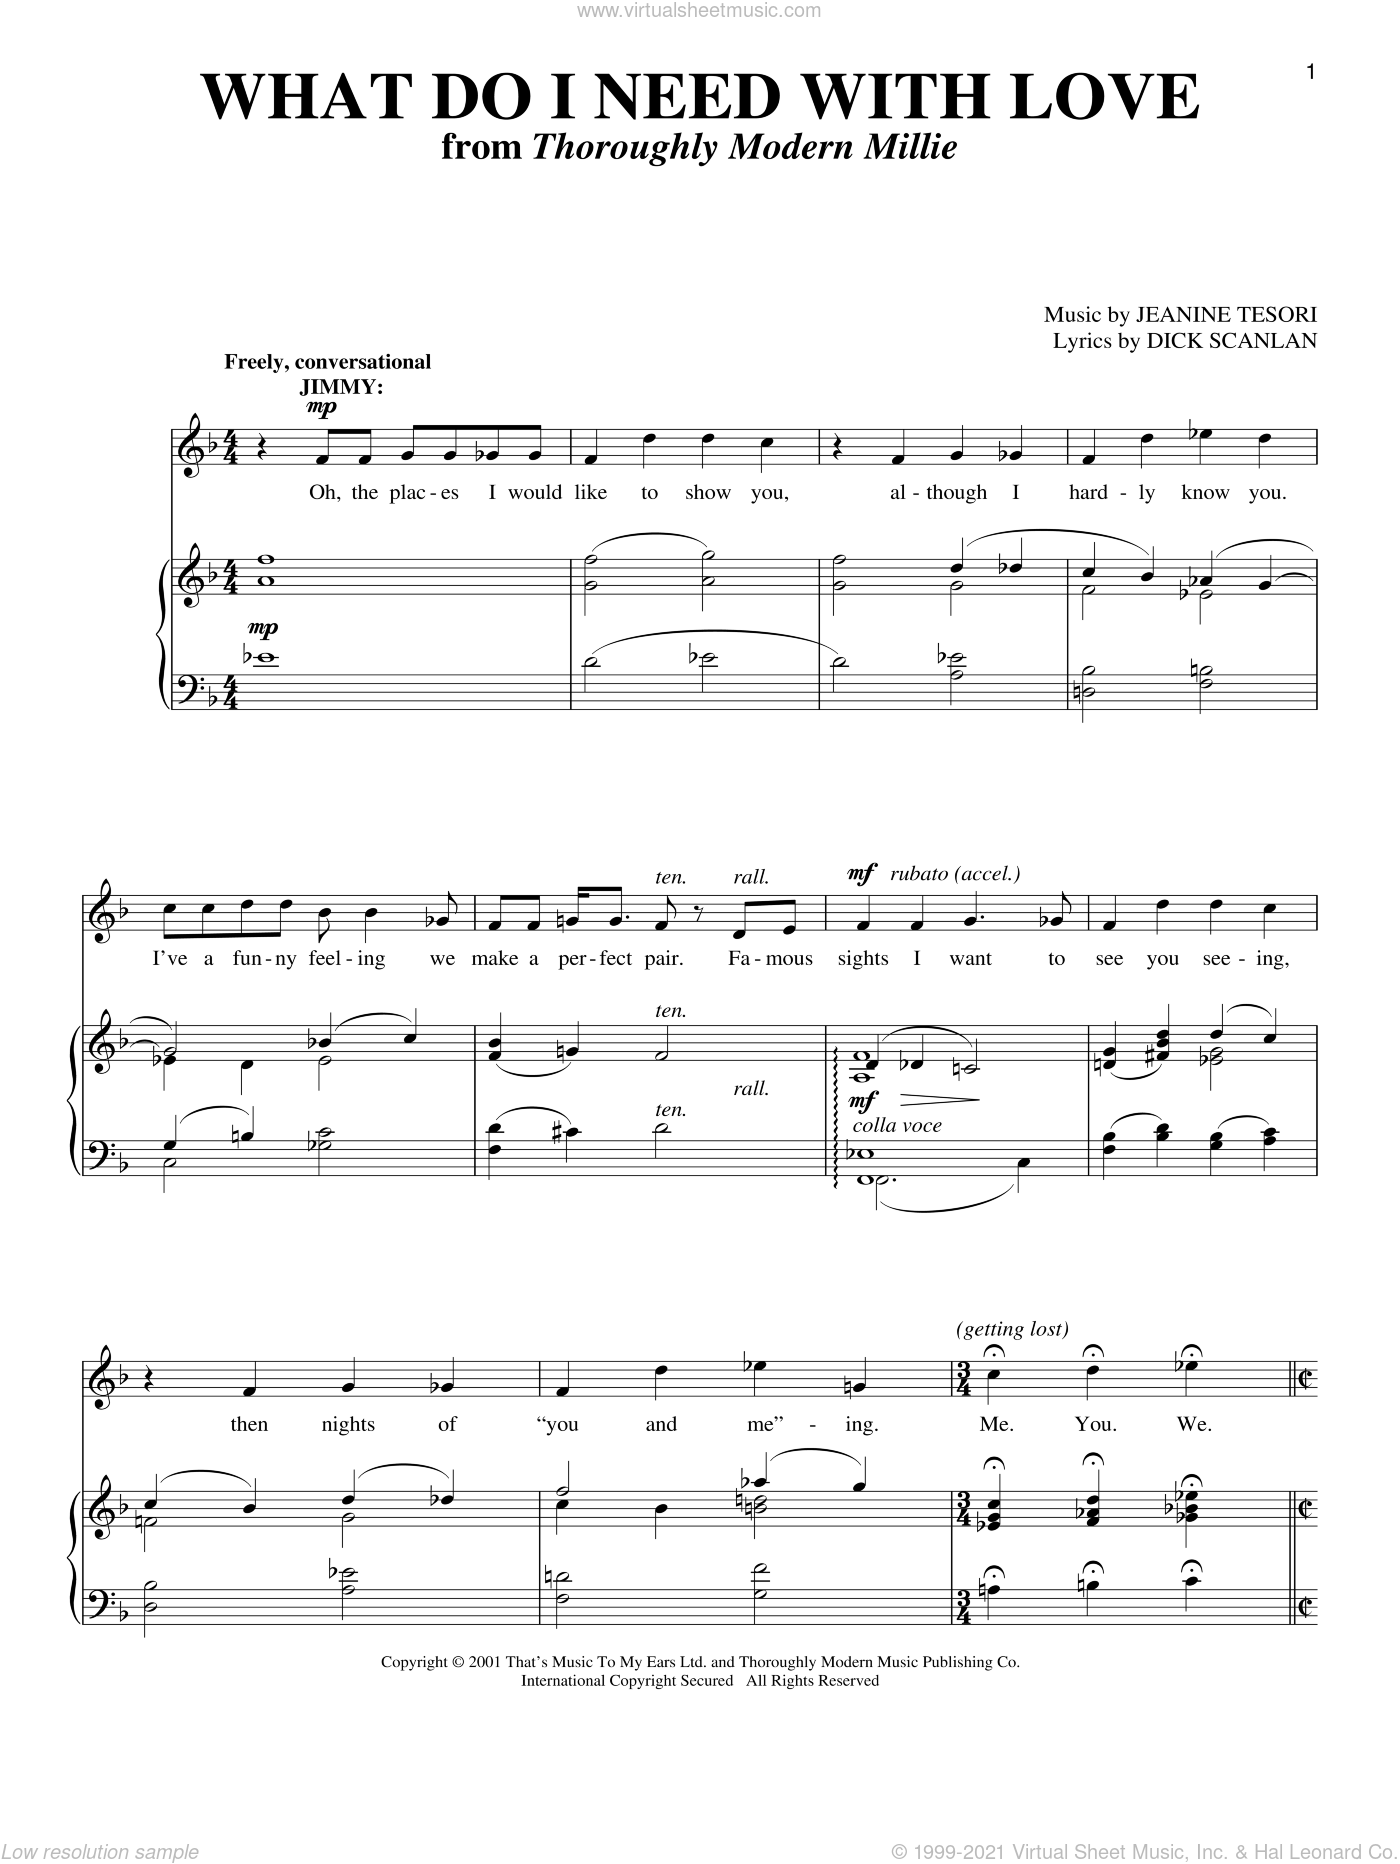 What Do I Need With Love sheet music for voice and piano by Dick Scanlan and Jeanine Tesori, intermediate skill level